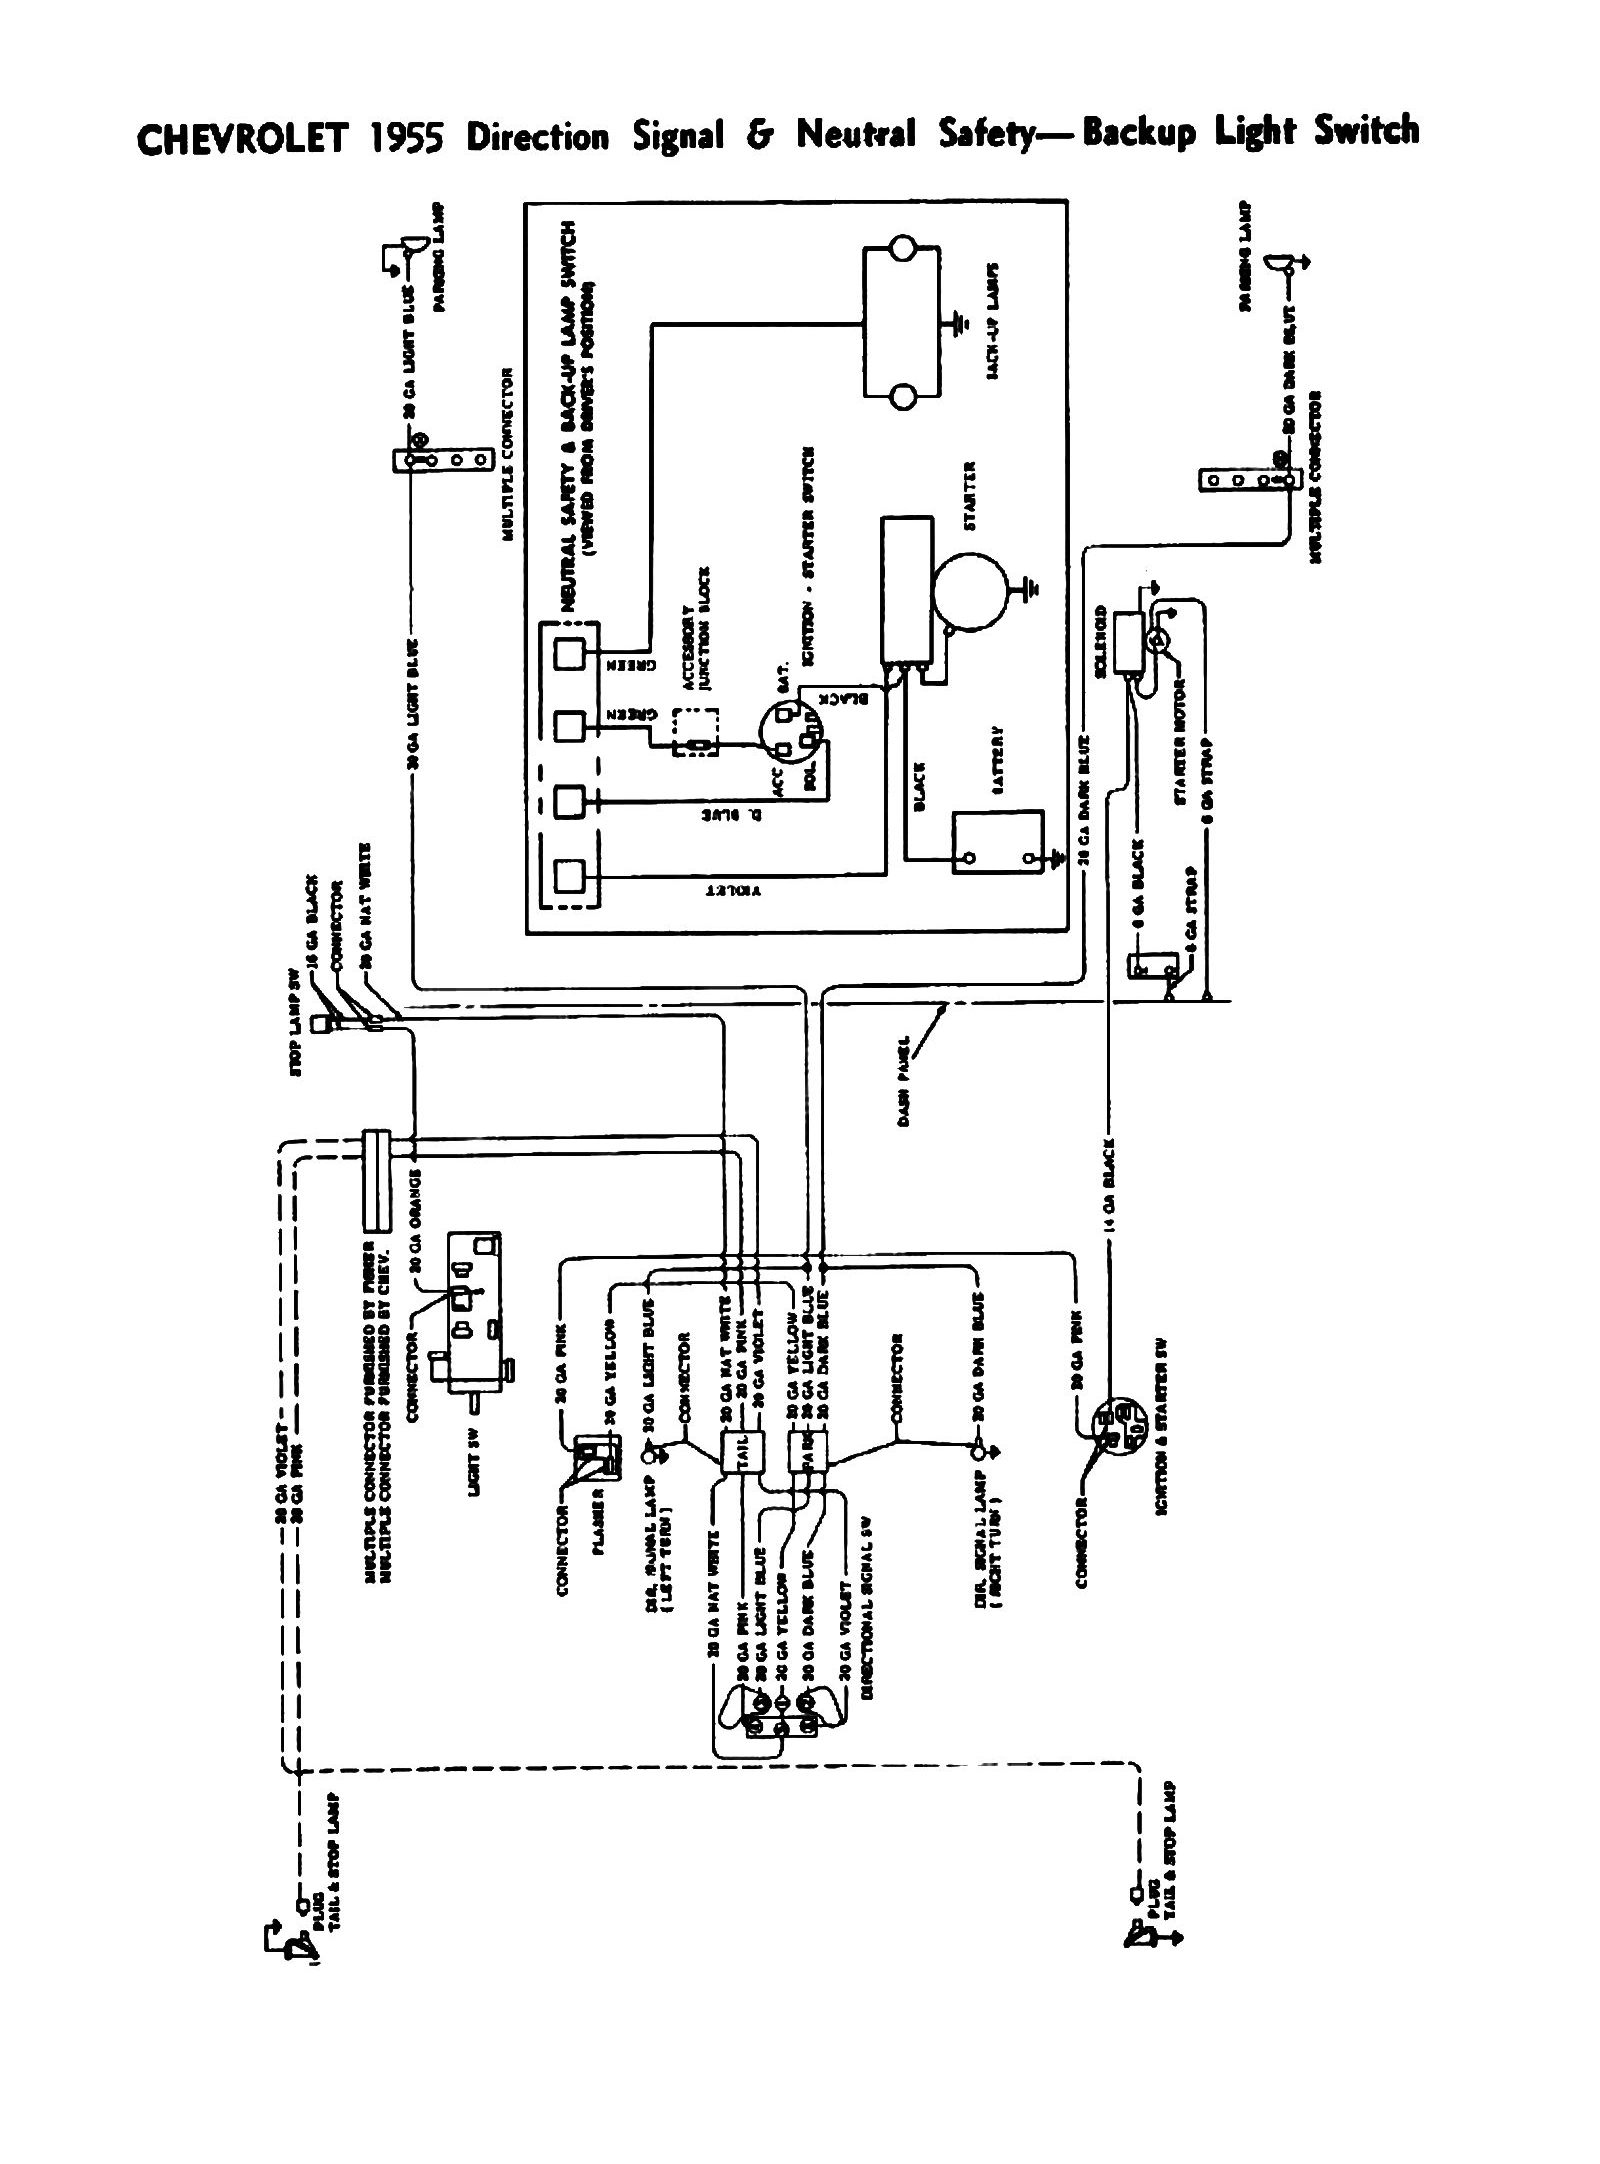 Ford Ignition Switch Wiring Schematic Wire Data Schema 97 F150 Wiper Motor Diagram 56 Chevy Headlight Trusted Schematics Diagrams U2022 Rh Bestbooksrichtreasures Com 1997 F